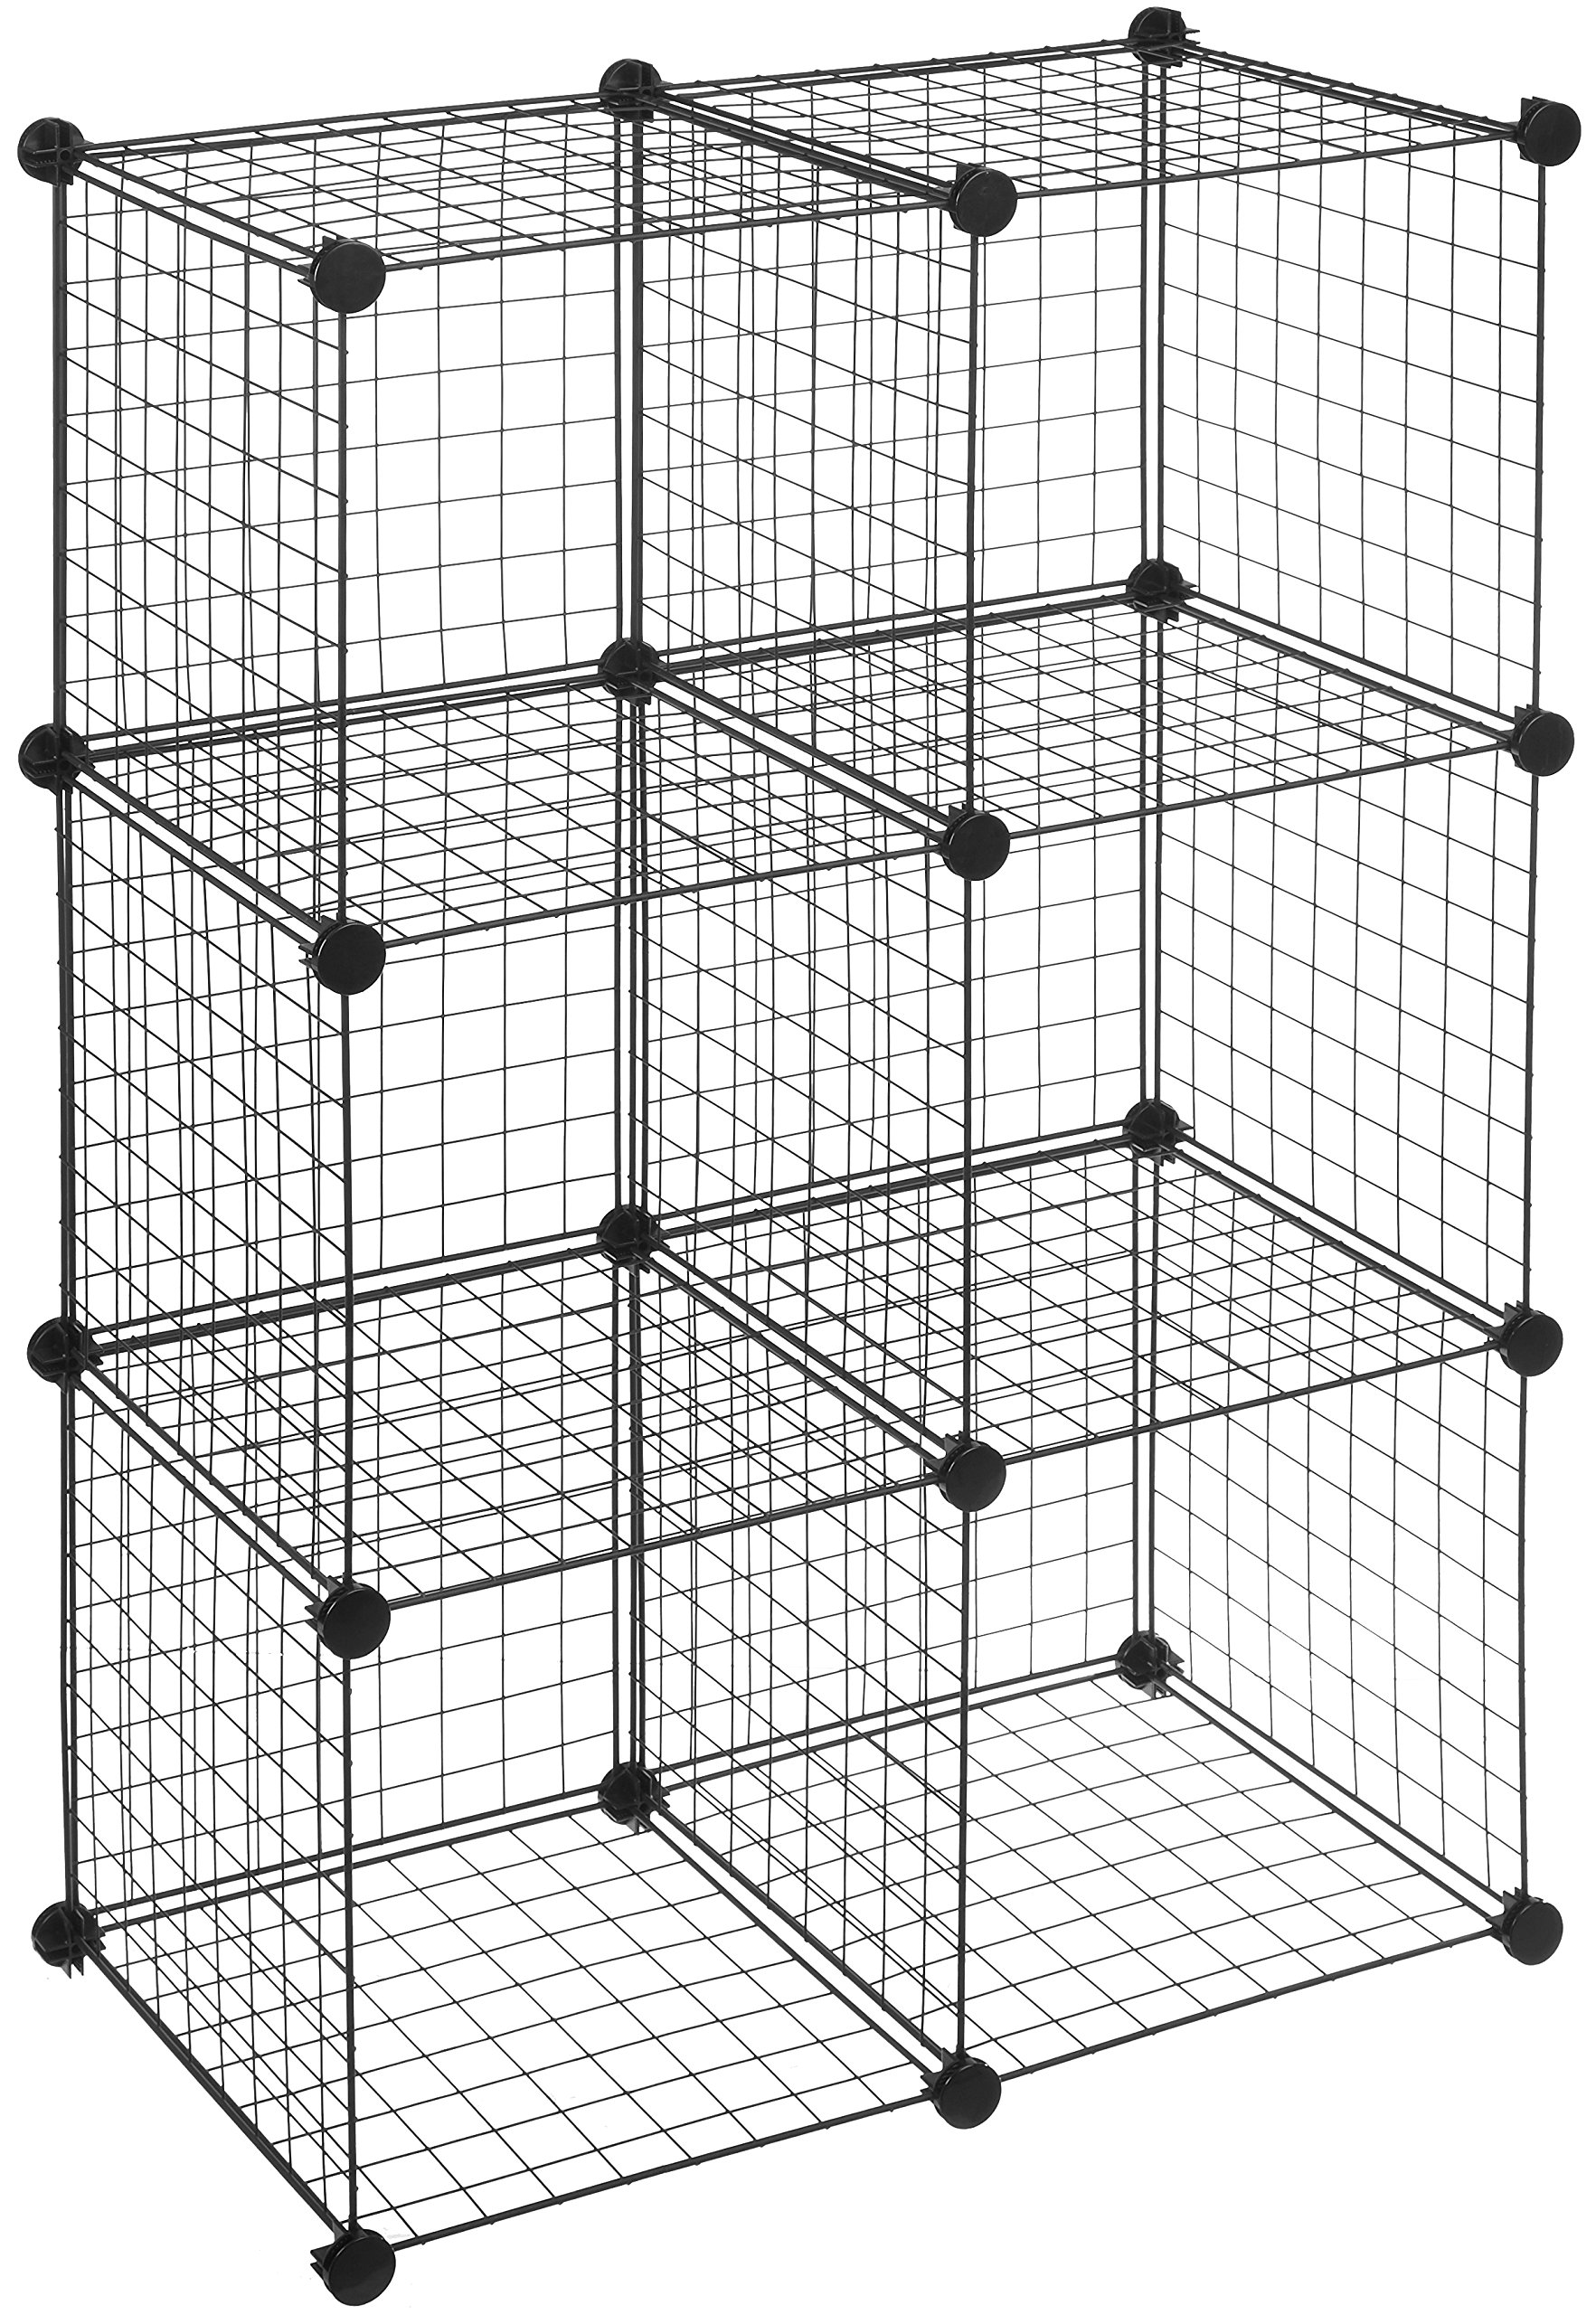 AmazonBasics 6 Cube Grid Wire Storage Shelves, Black by AmazonBasics